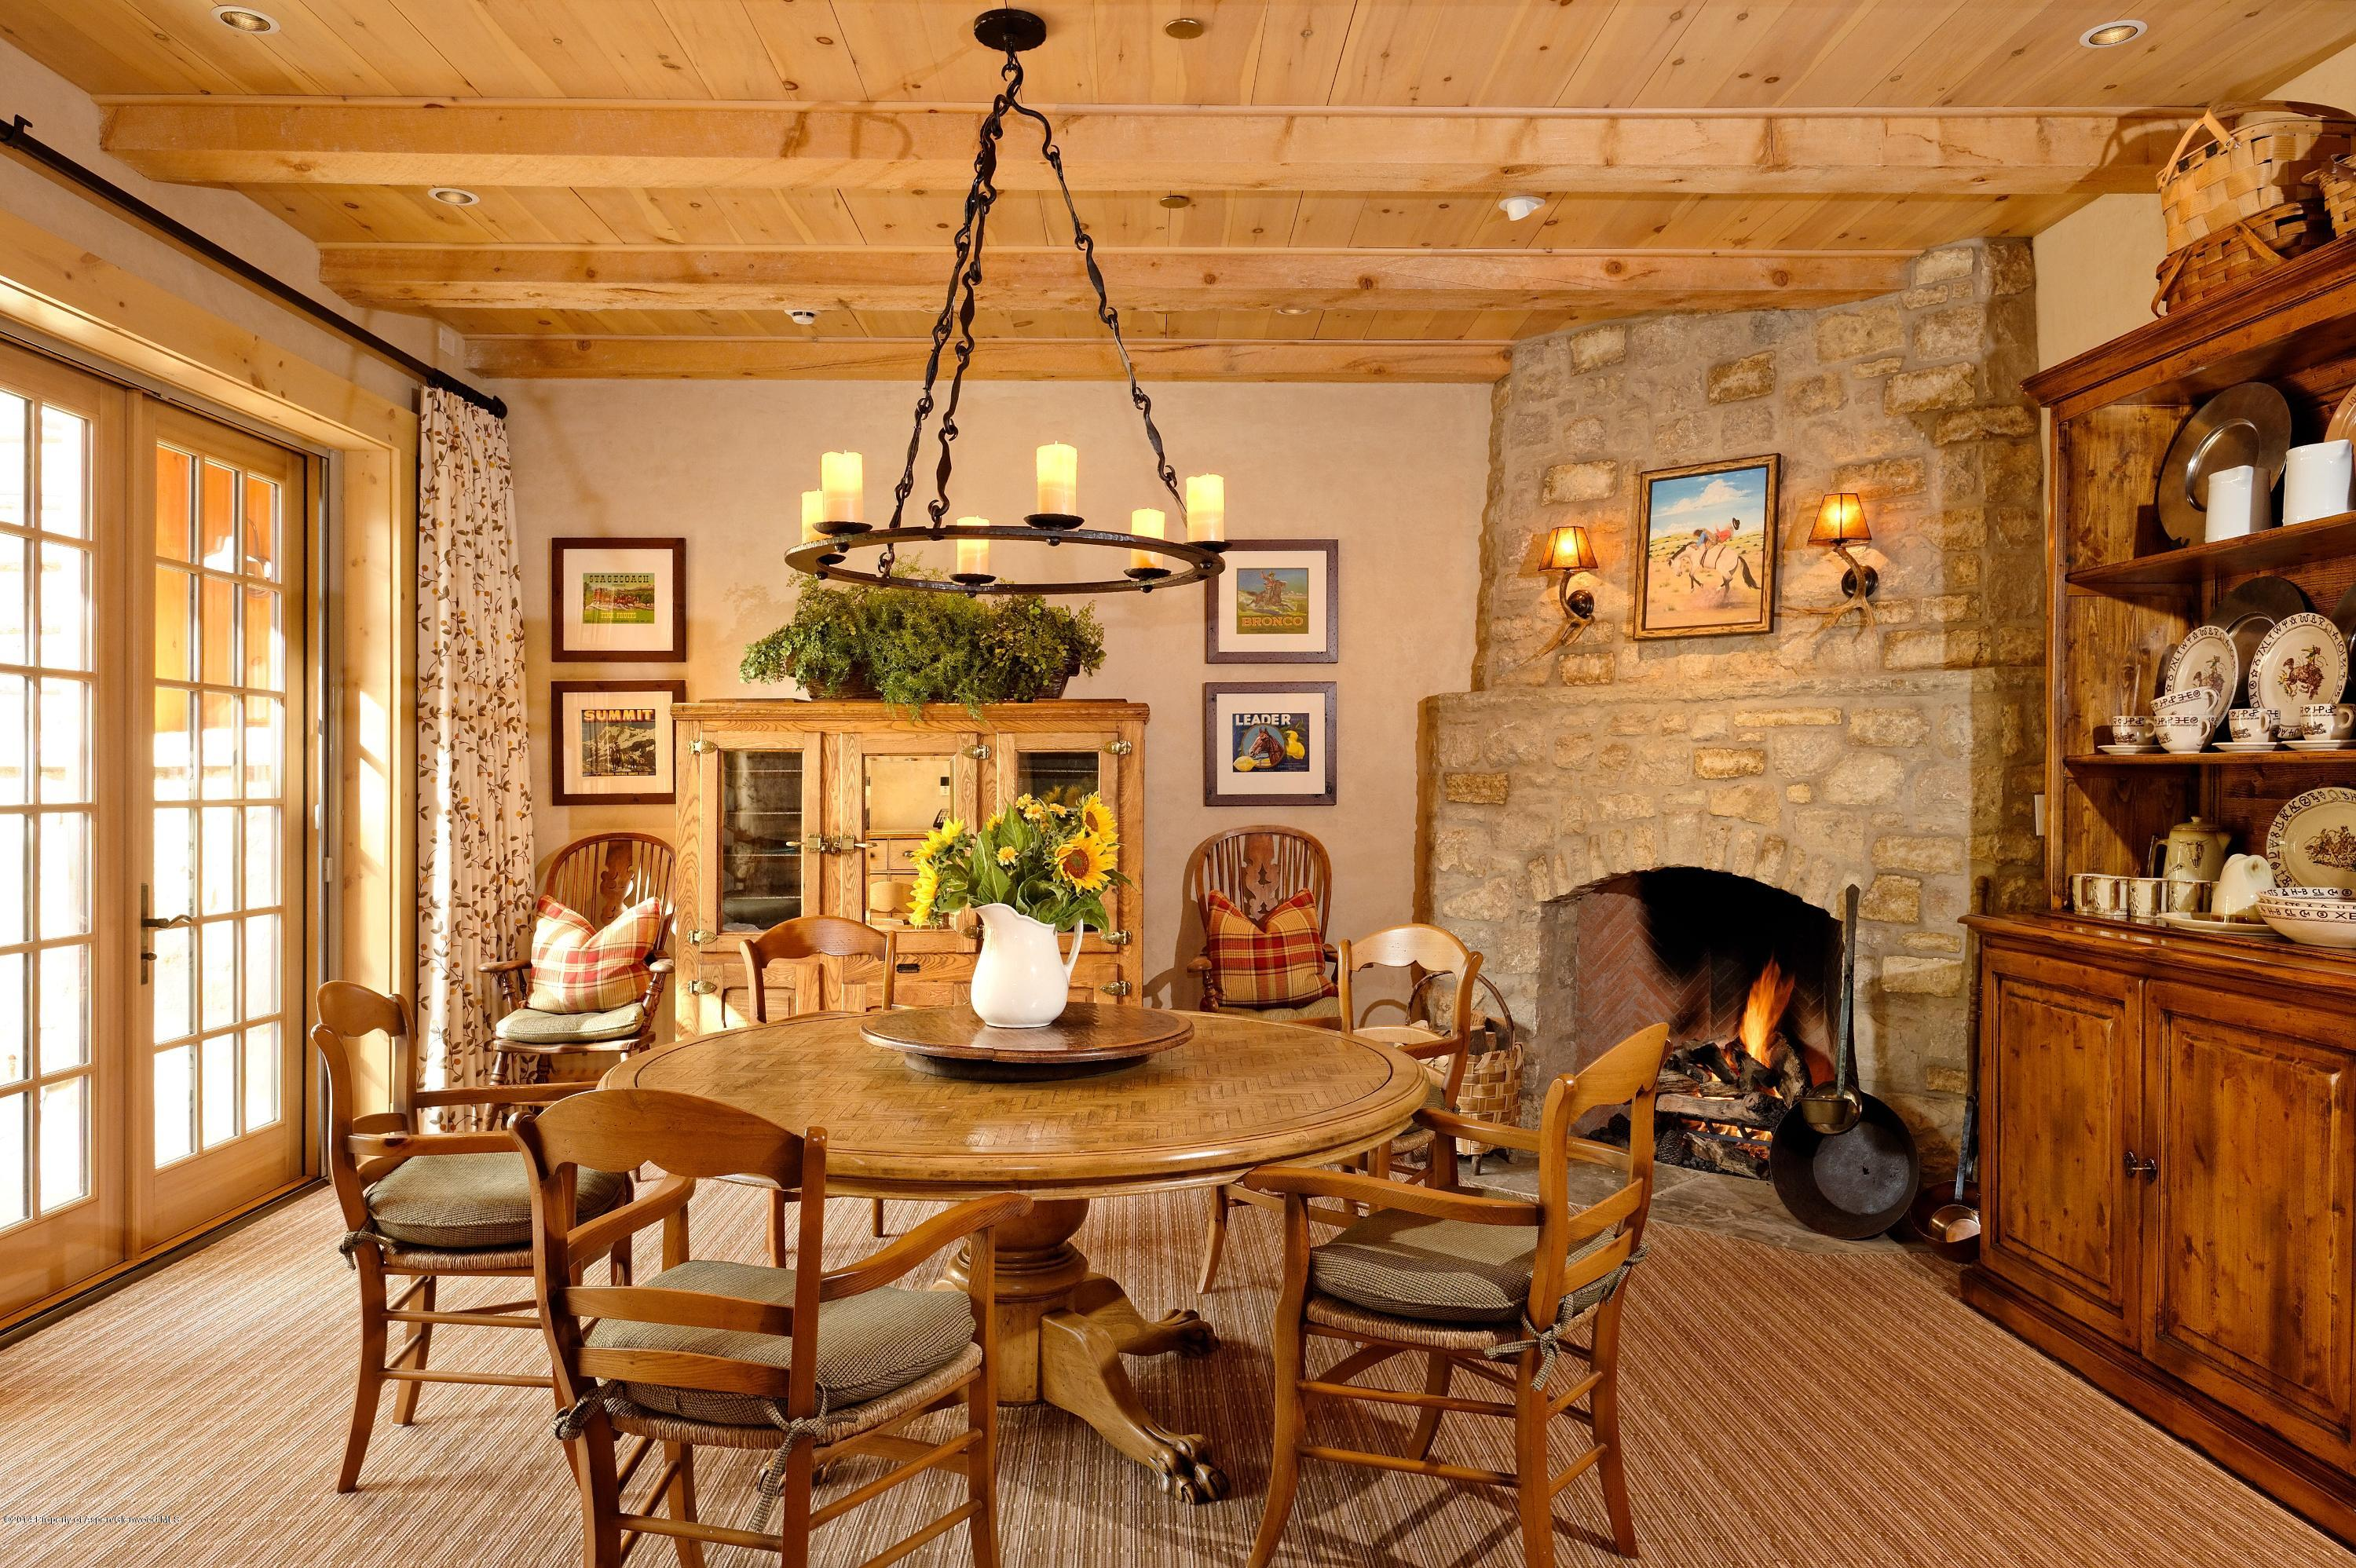 MLS# 135595 - 22 - 50 E River Ranch Road, Snowmass, CO 81654